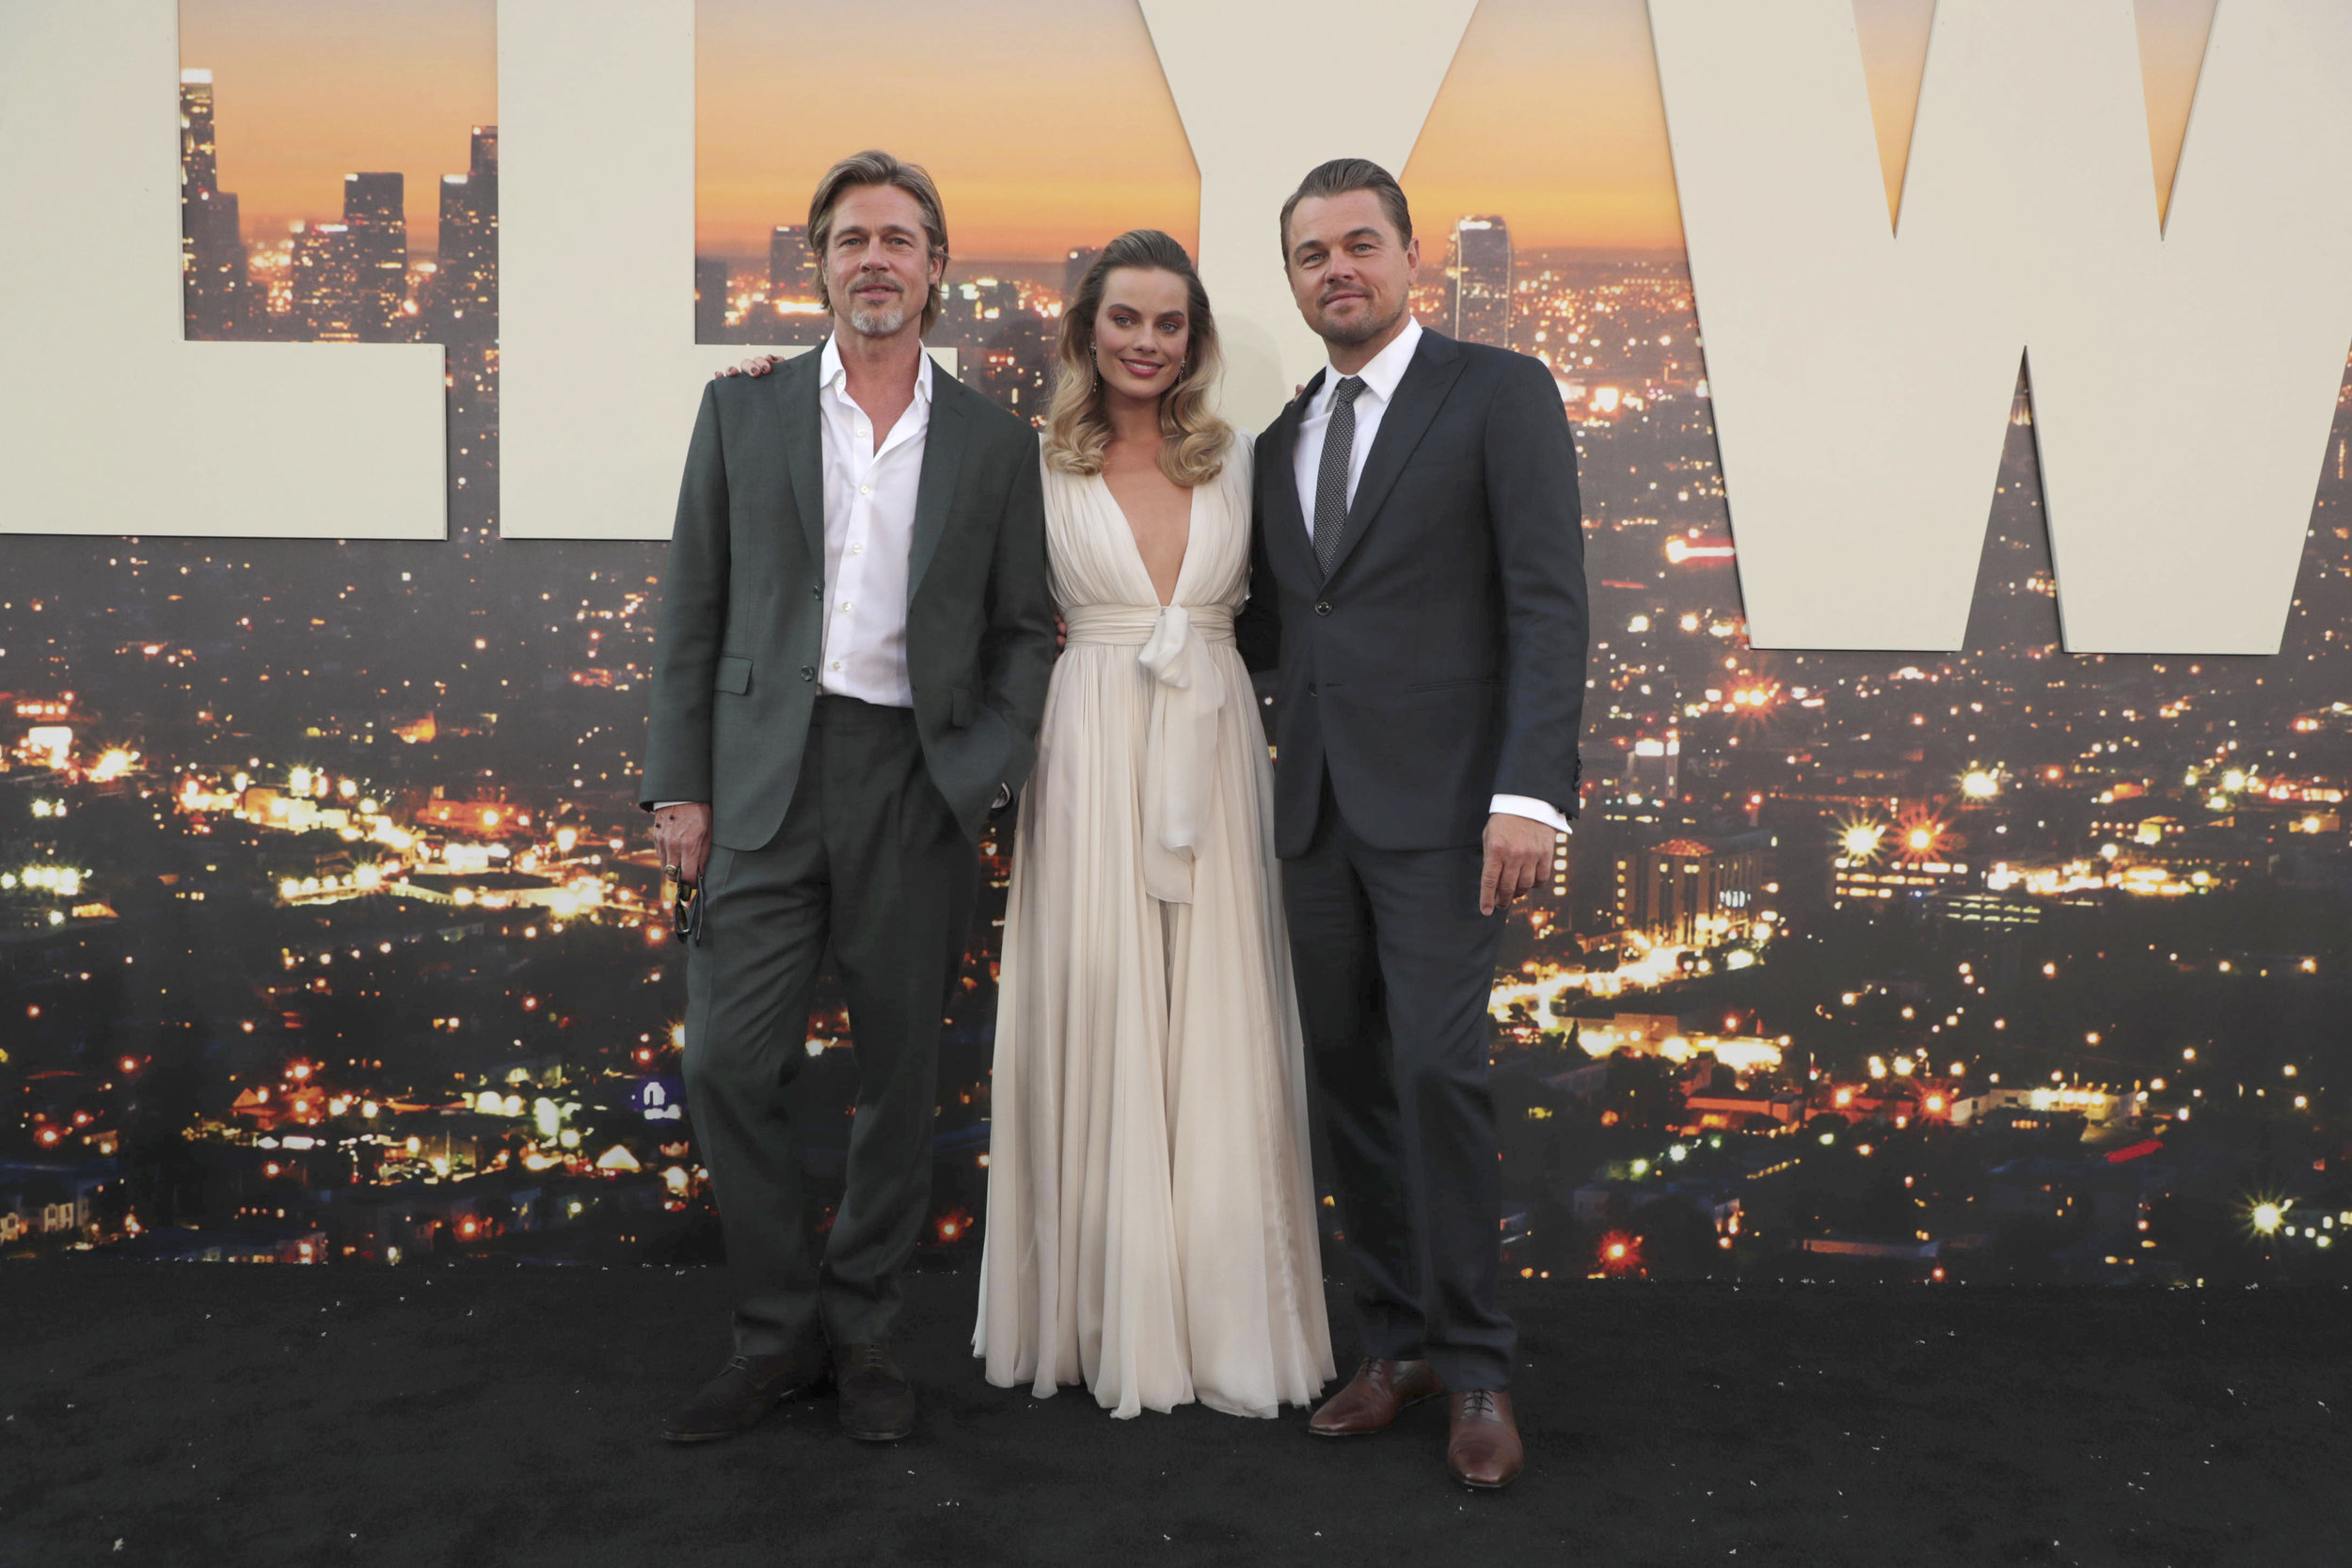 ONCE UPON A TIME IN HOLLYWOOD_LA PREMIERE_0046_rgb.jpg